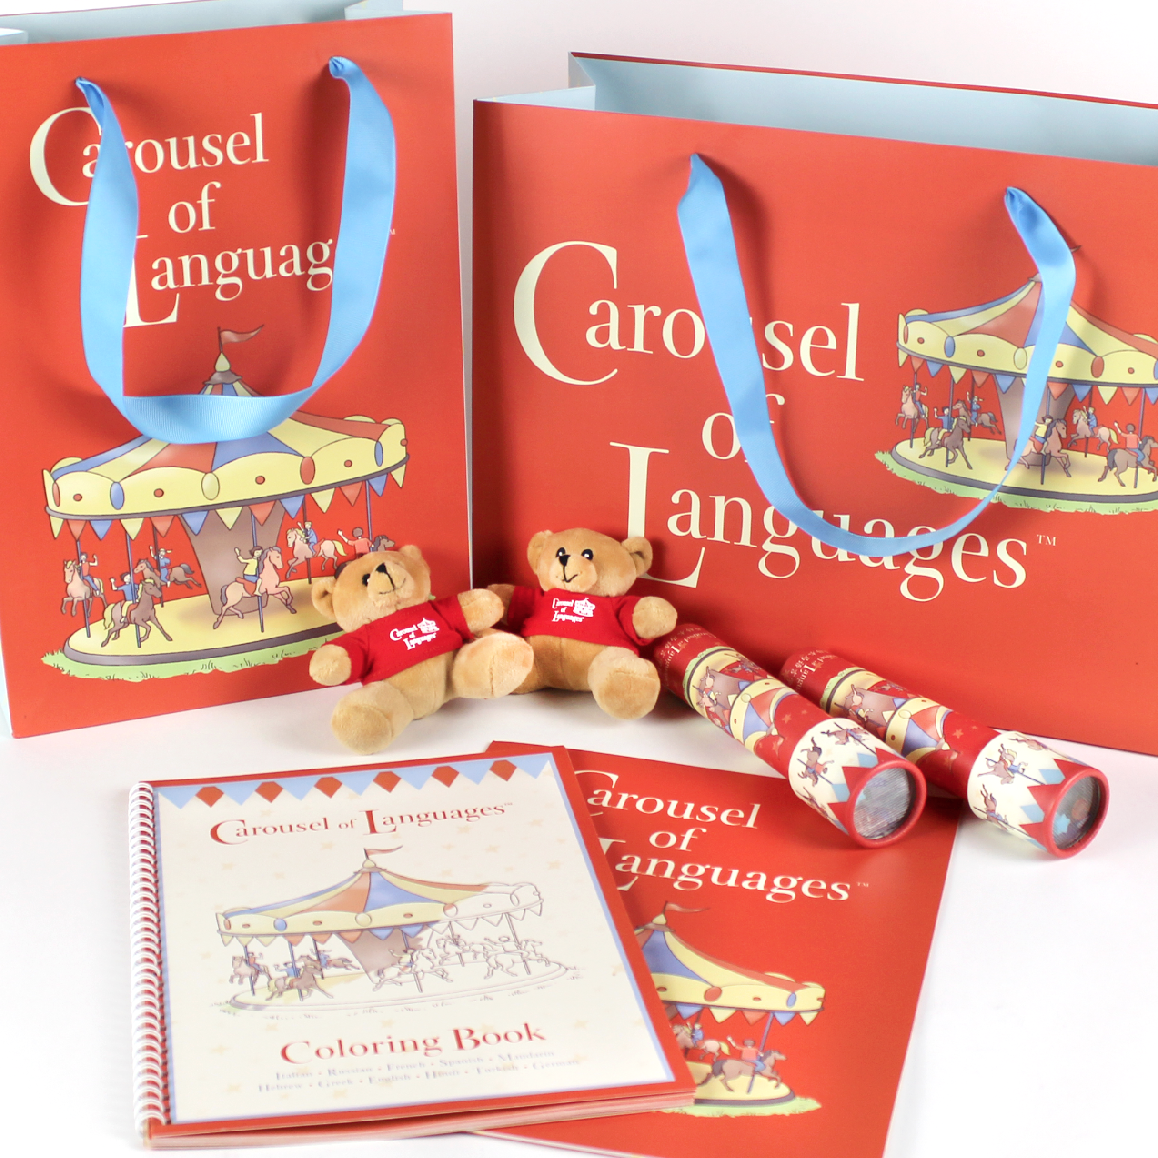 Carousel of Languages  Graphic Design for a foreign language learning program in Manhattan's upper east side.